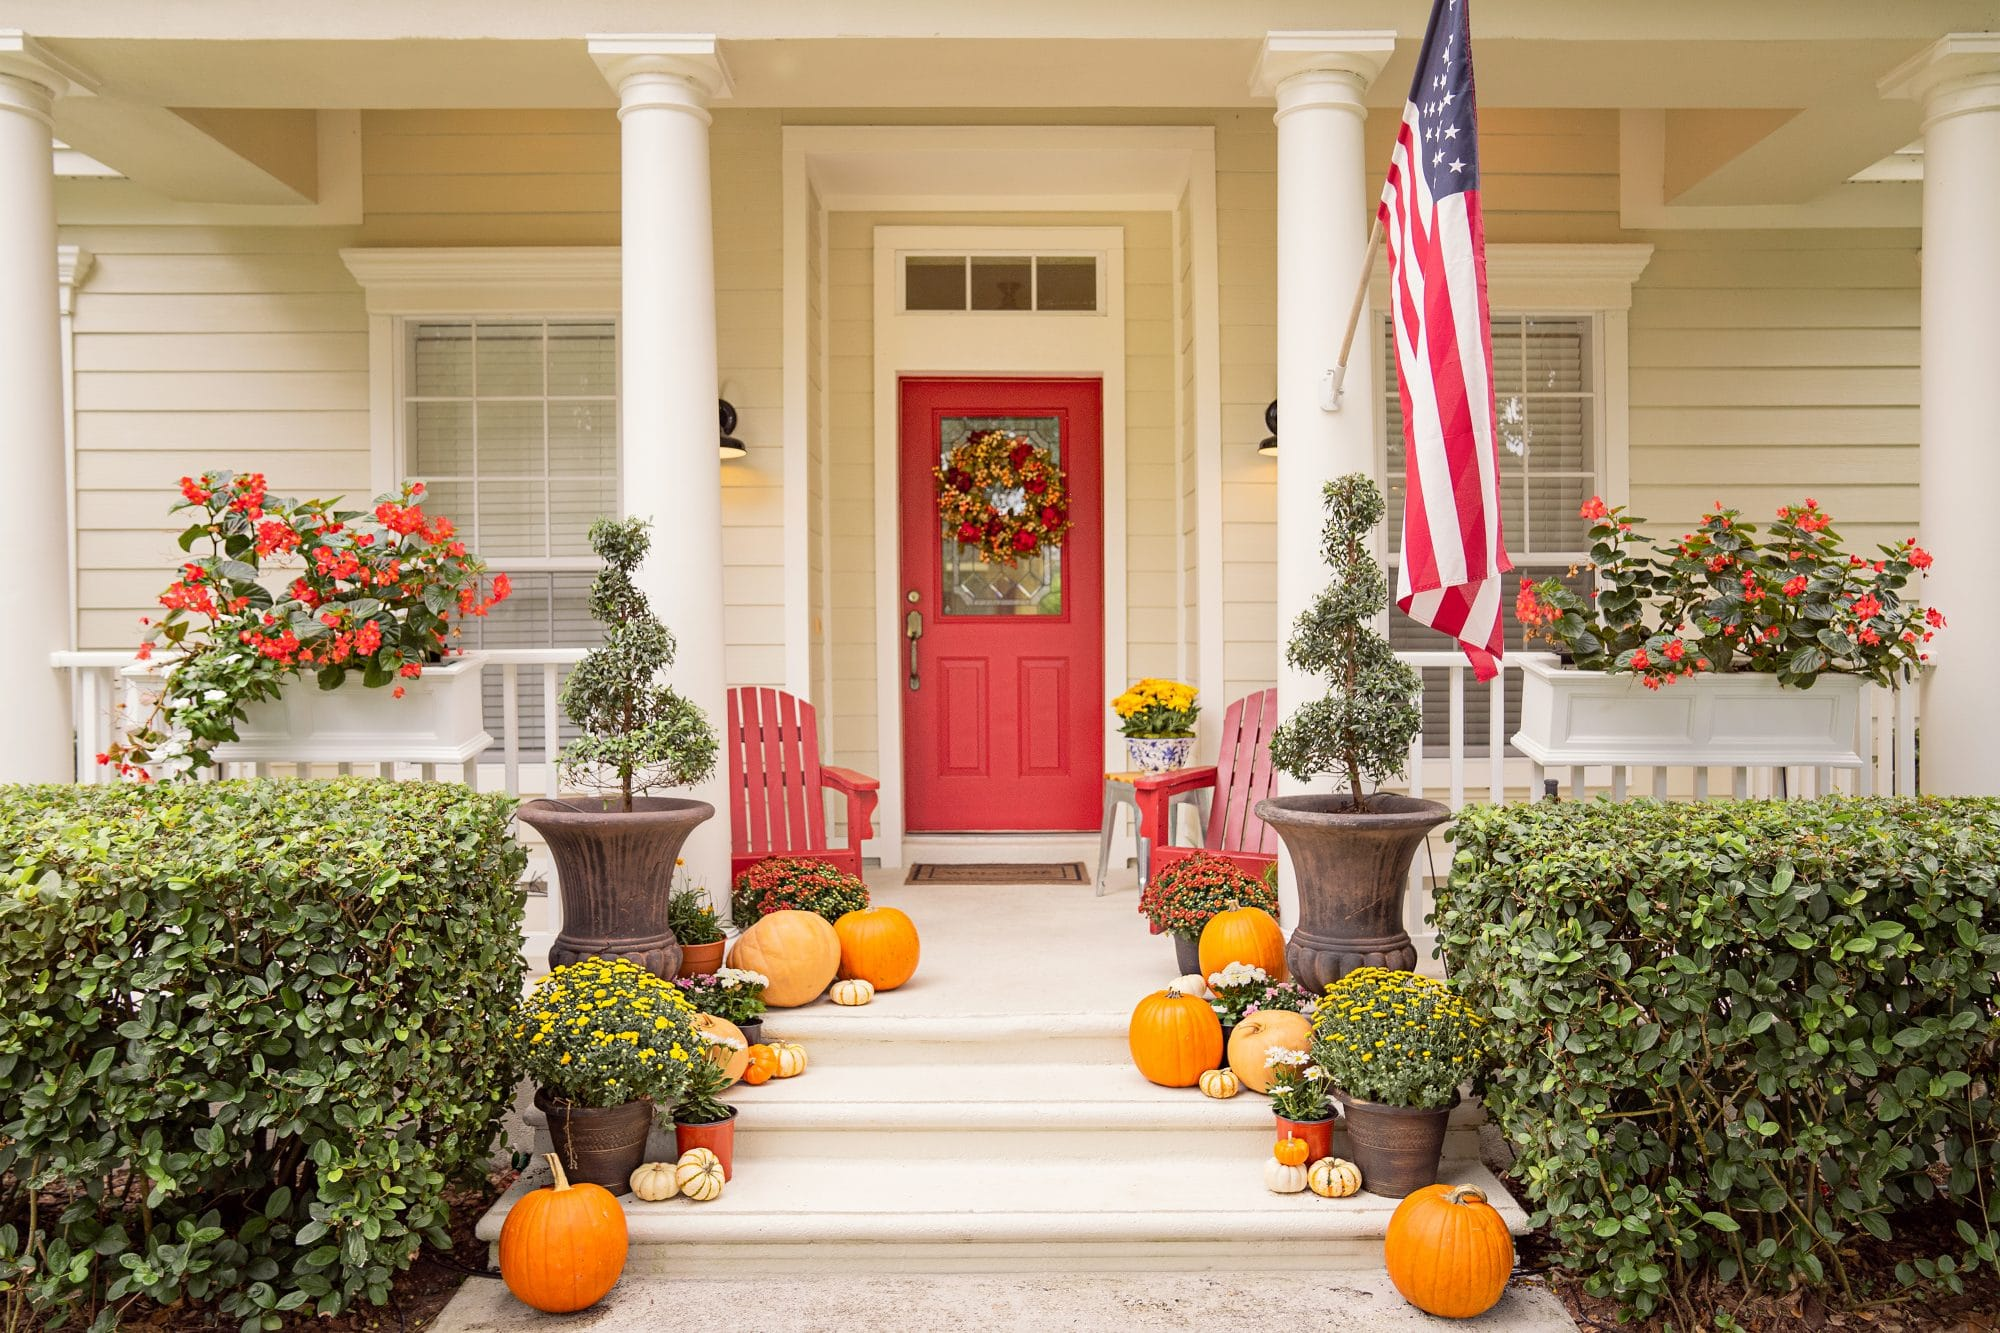 Ashley Brooke's Front Porch - Fall - www.ashleybrookedesigns.com